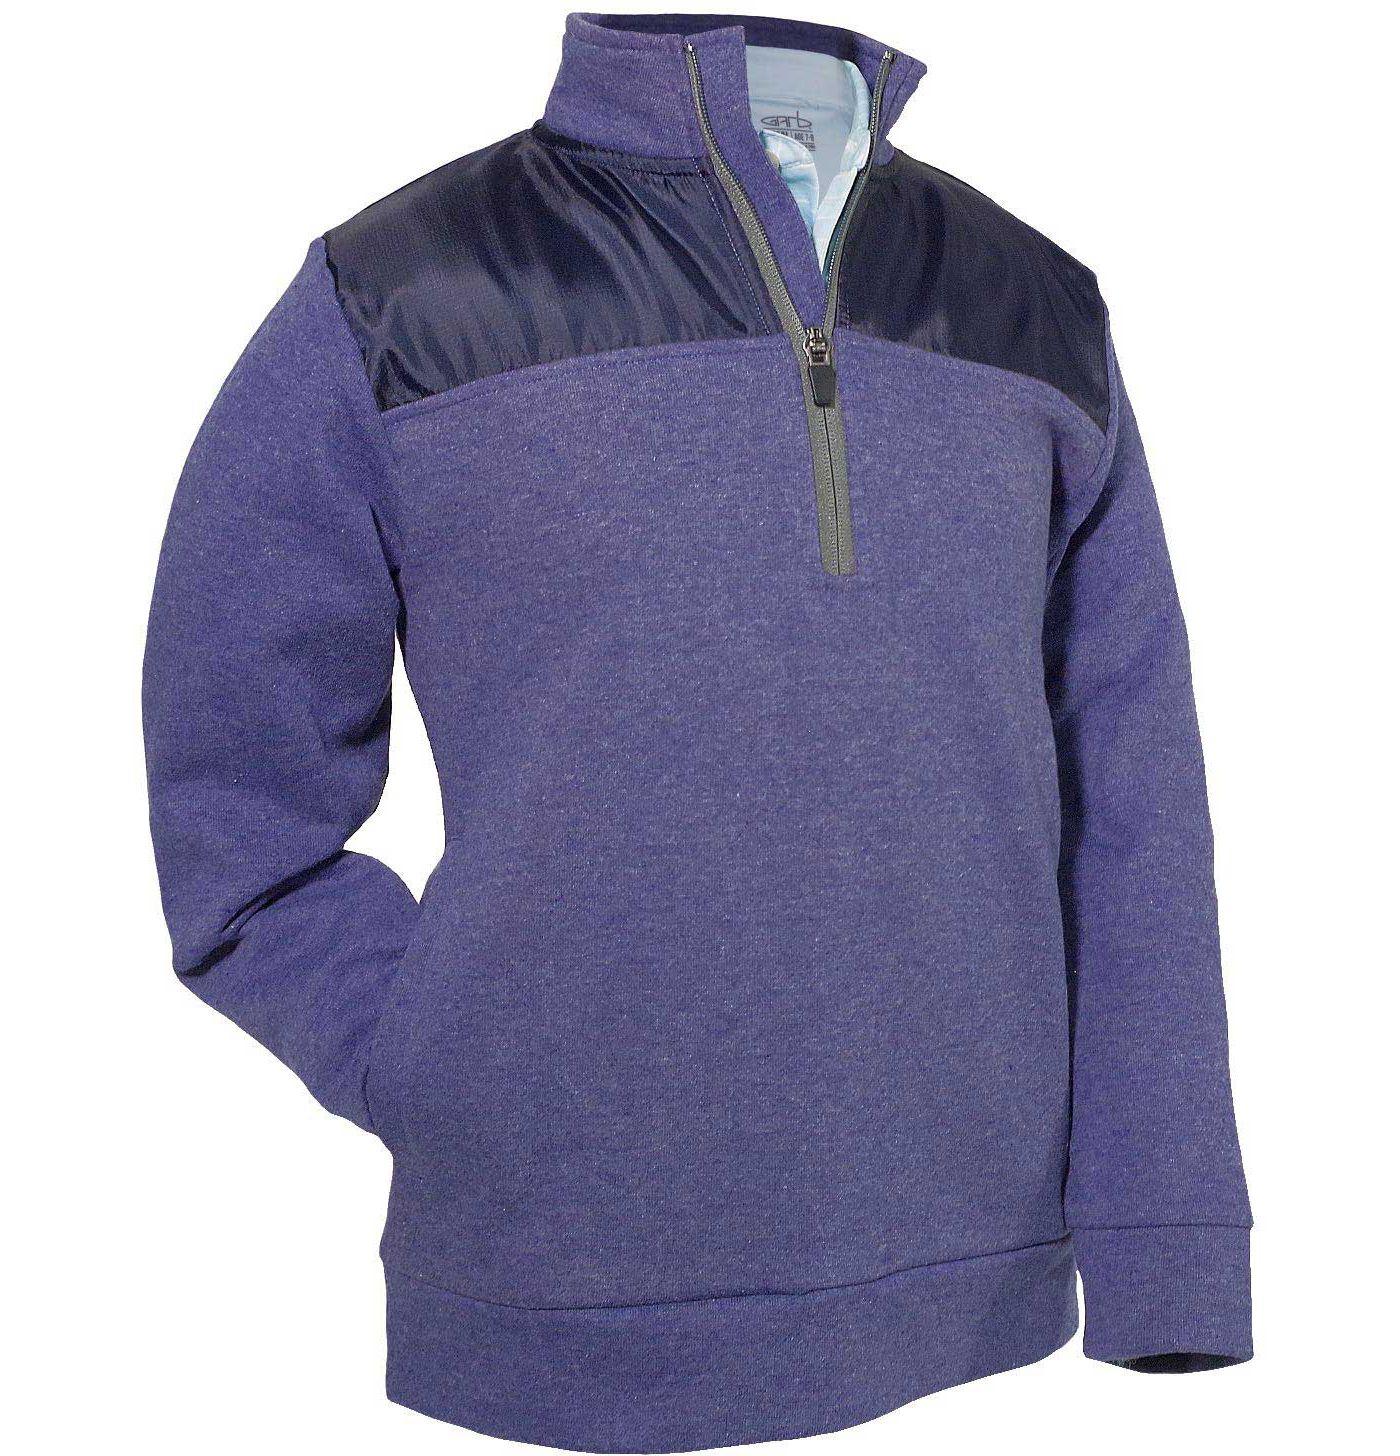 Garb Boys' Luke Golf Pullover